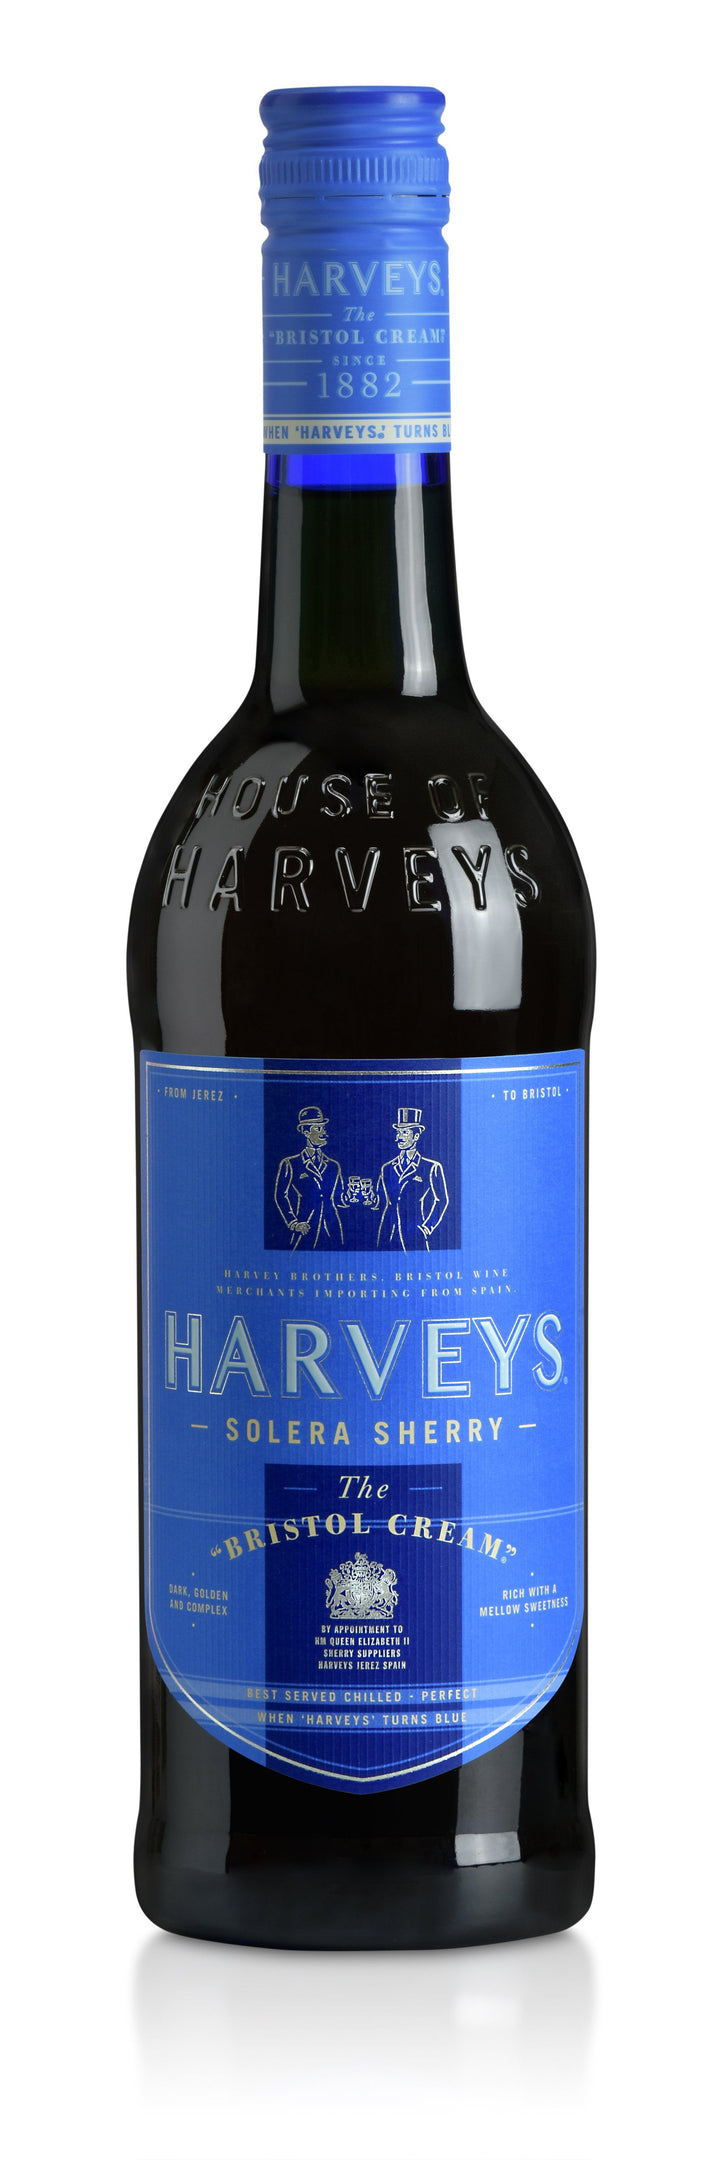 Vino Harveys Bristol Cream | bogar-wines.